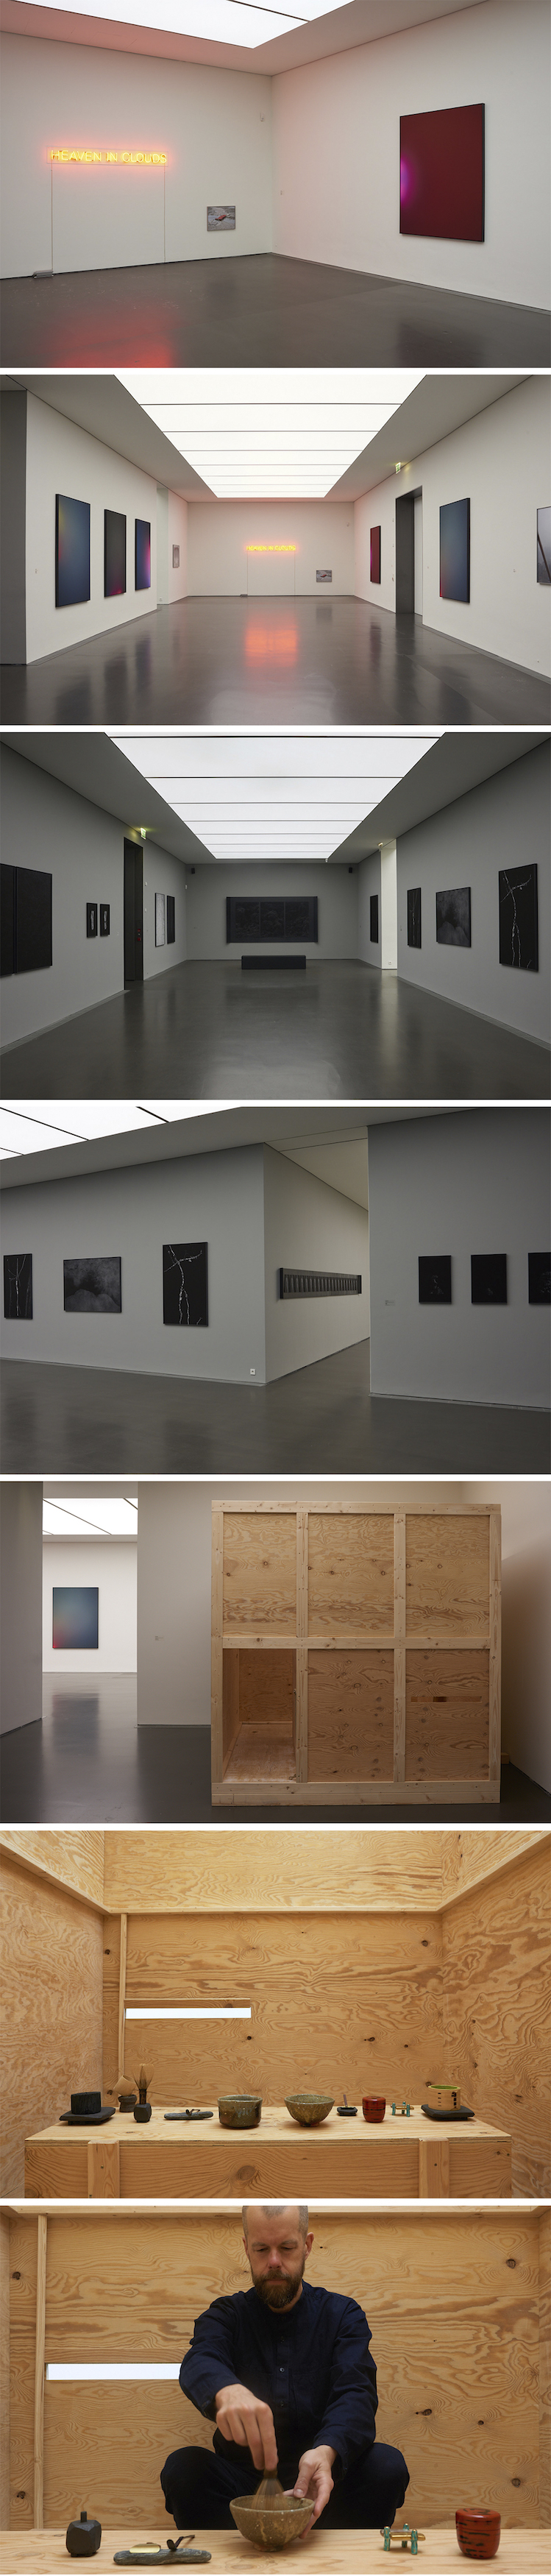 Installation views Kunstmuseum Stuttgart, Kubus. Sparda Art Award